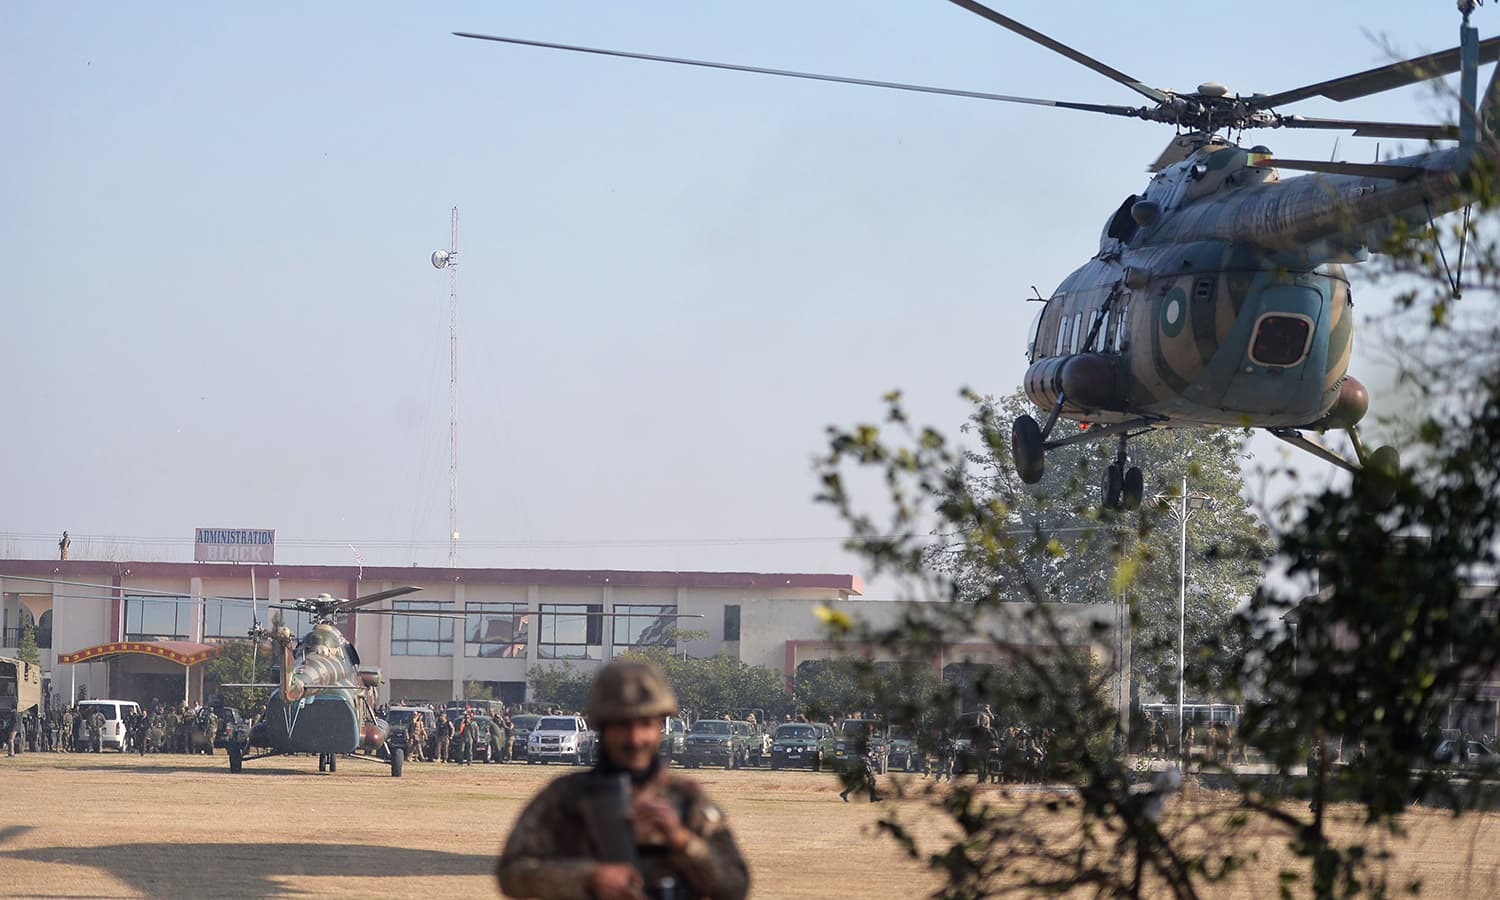 An army helicopter (R) carrying Chief of Army Staff General Raheel Sharif arrives at Bacha Khan university. -AFP